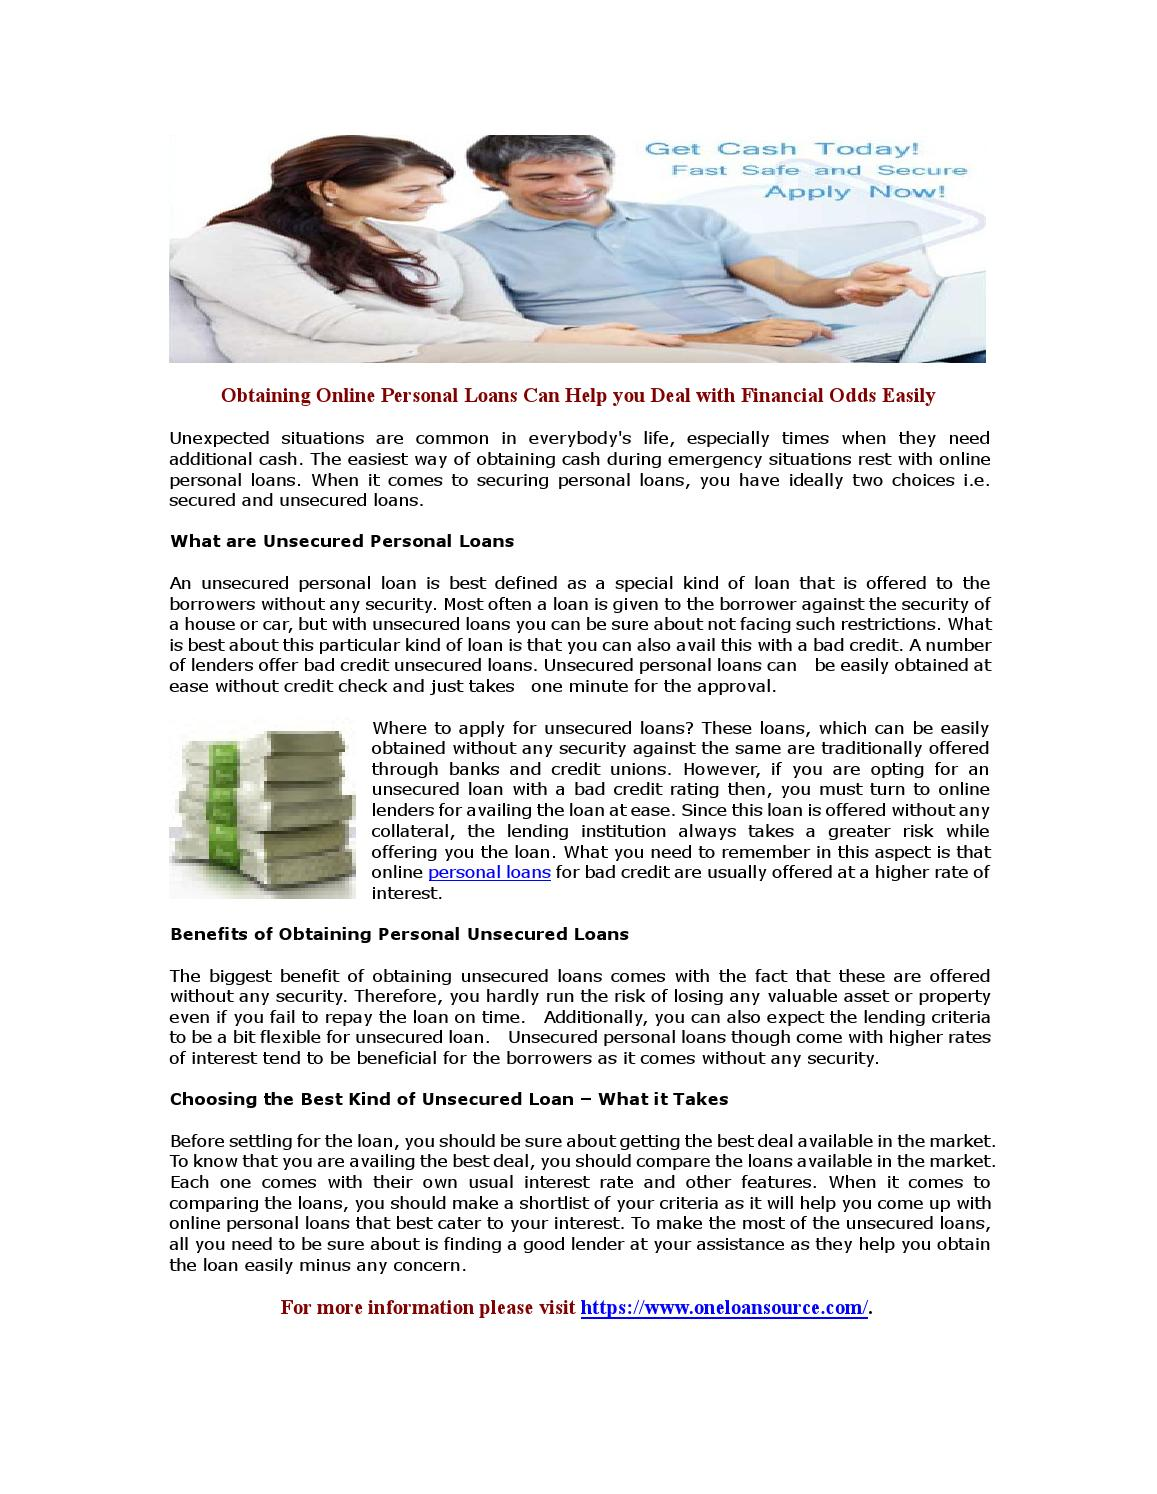 Obtaining online personal loans can help you deal with financial odds easily by David Patrick ...